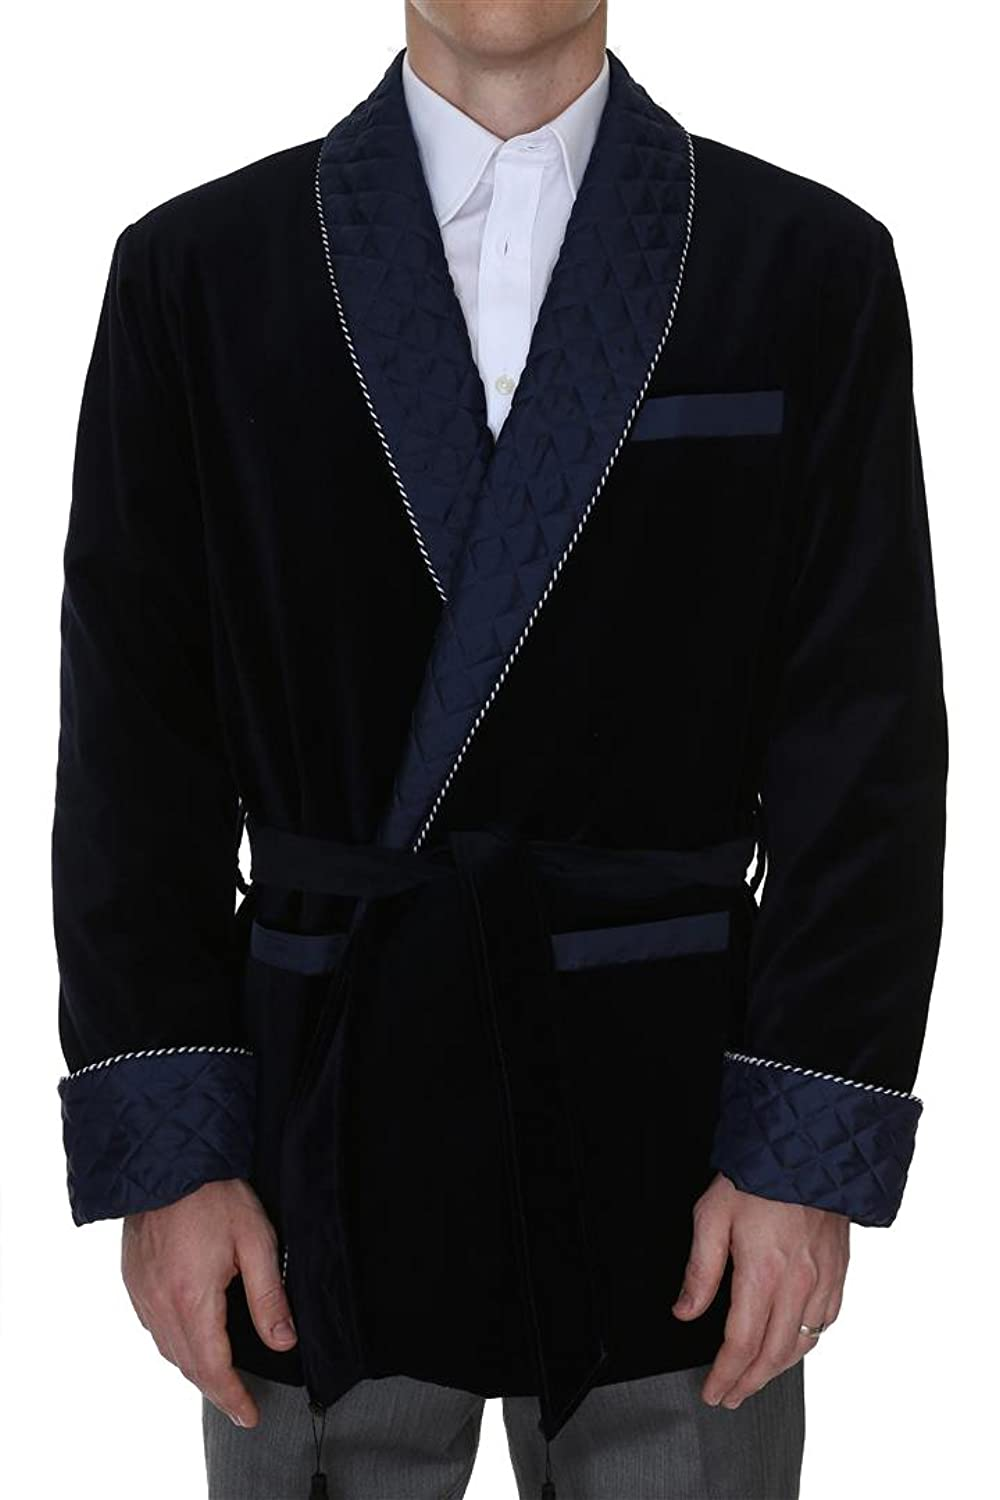 1920s Mens Coats & Jackets History Mens Smoking Jacket Bartholomew Navy $399.95 AT vintagedancer.com